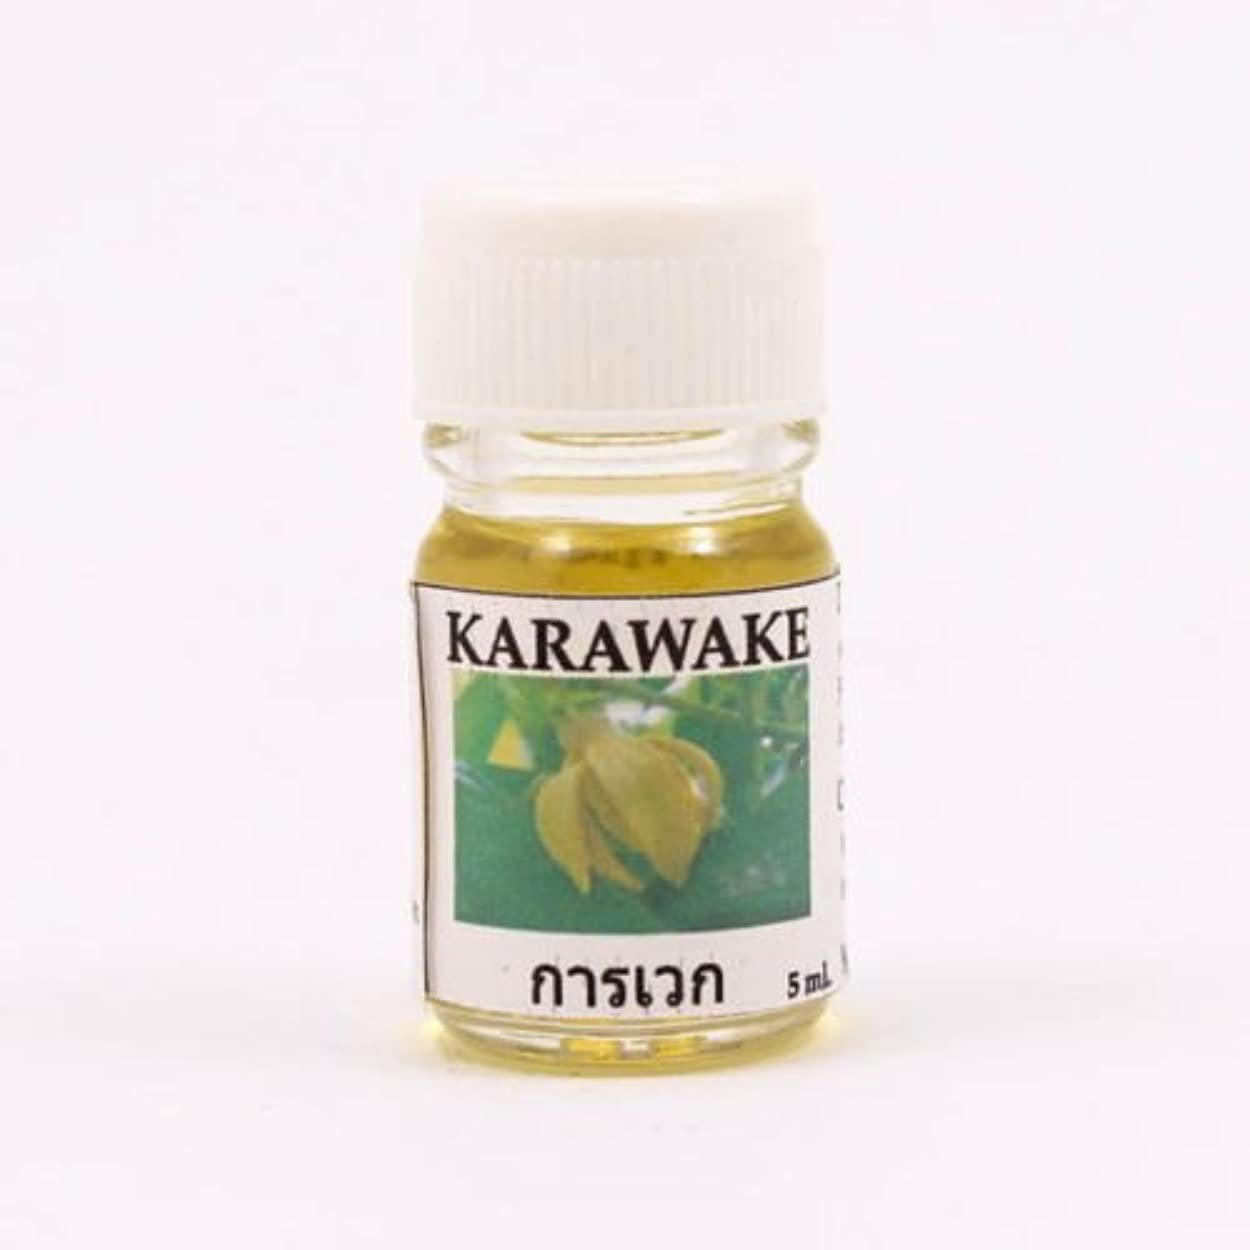 混雑乱用義務6X Karawake Aroma Fragrance Essential Oil 5ML. cc Diffuser Burner Therapy